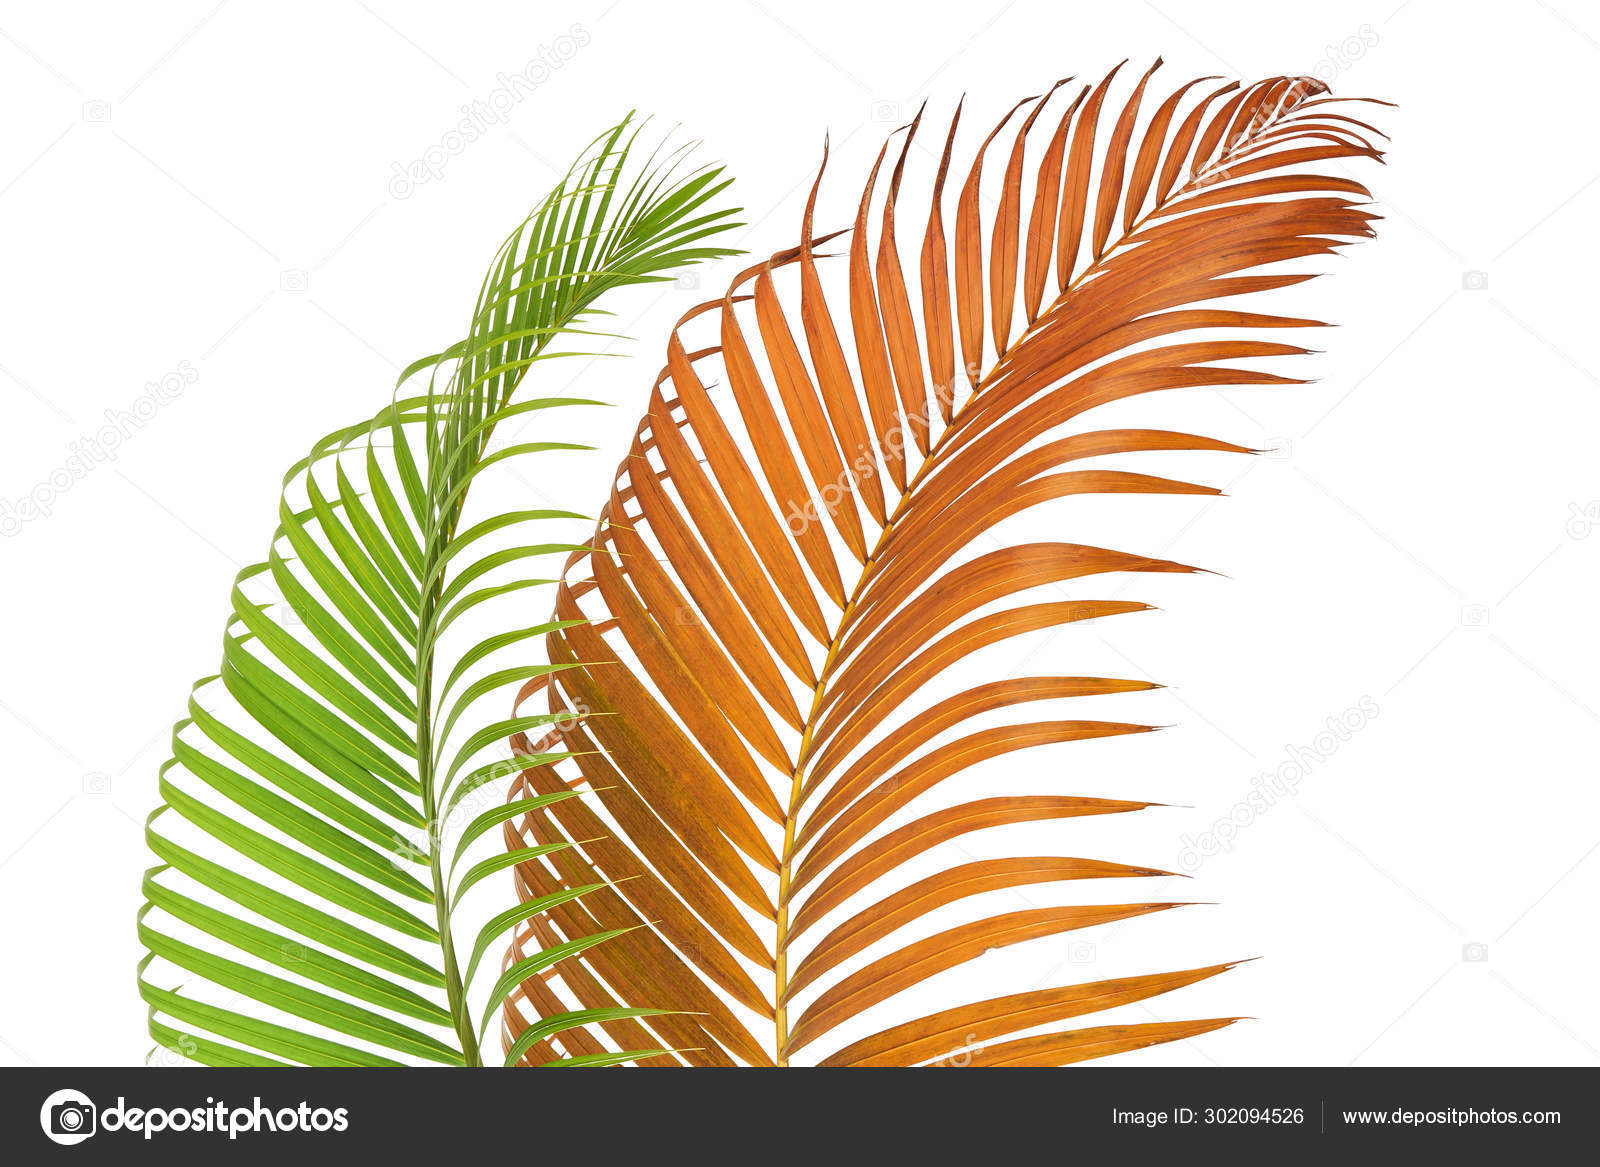 Yellow Palm Leaves Dypsis Lutescens Golden Cane Palm Areca Palm Stock Photo Image By Dewins 302094526